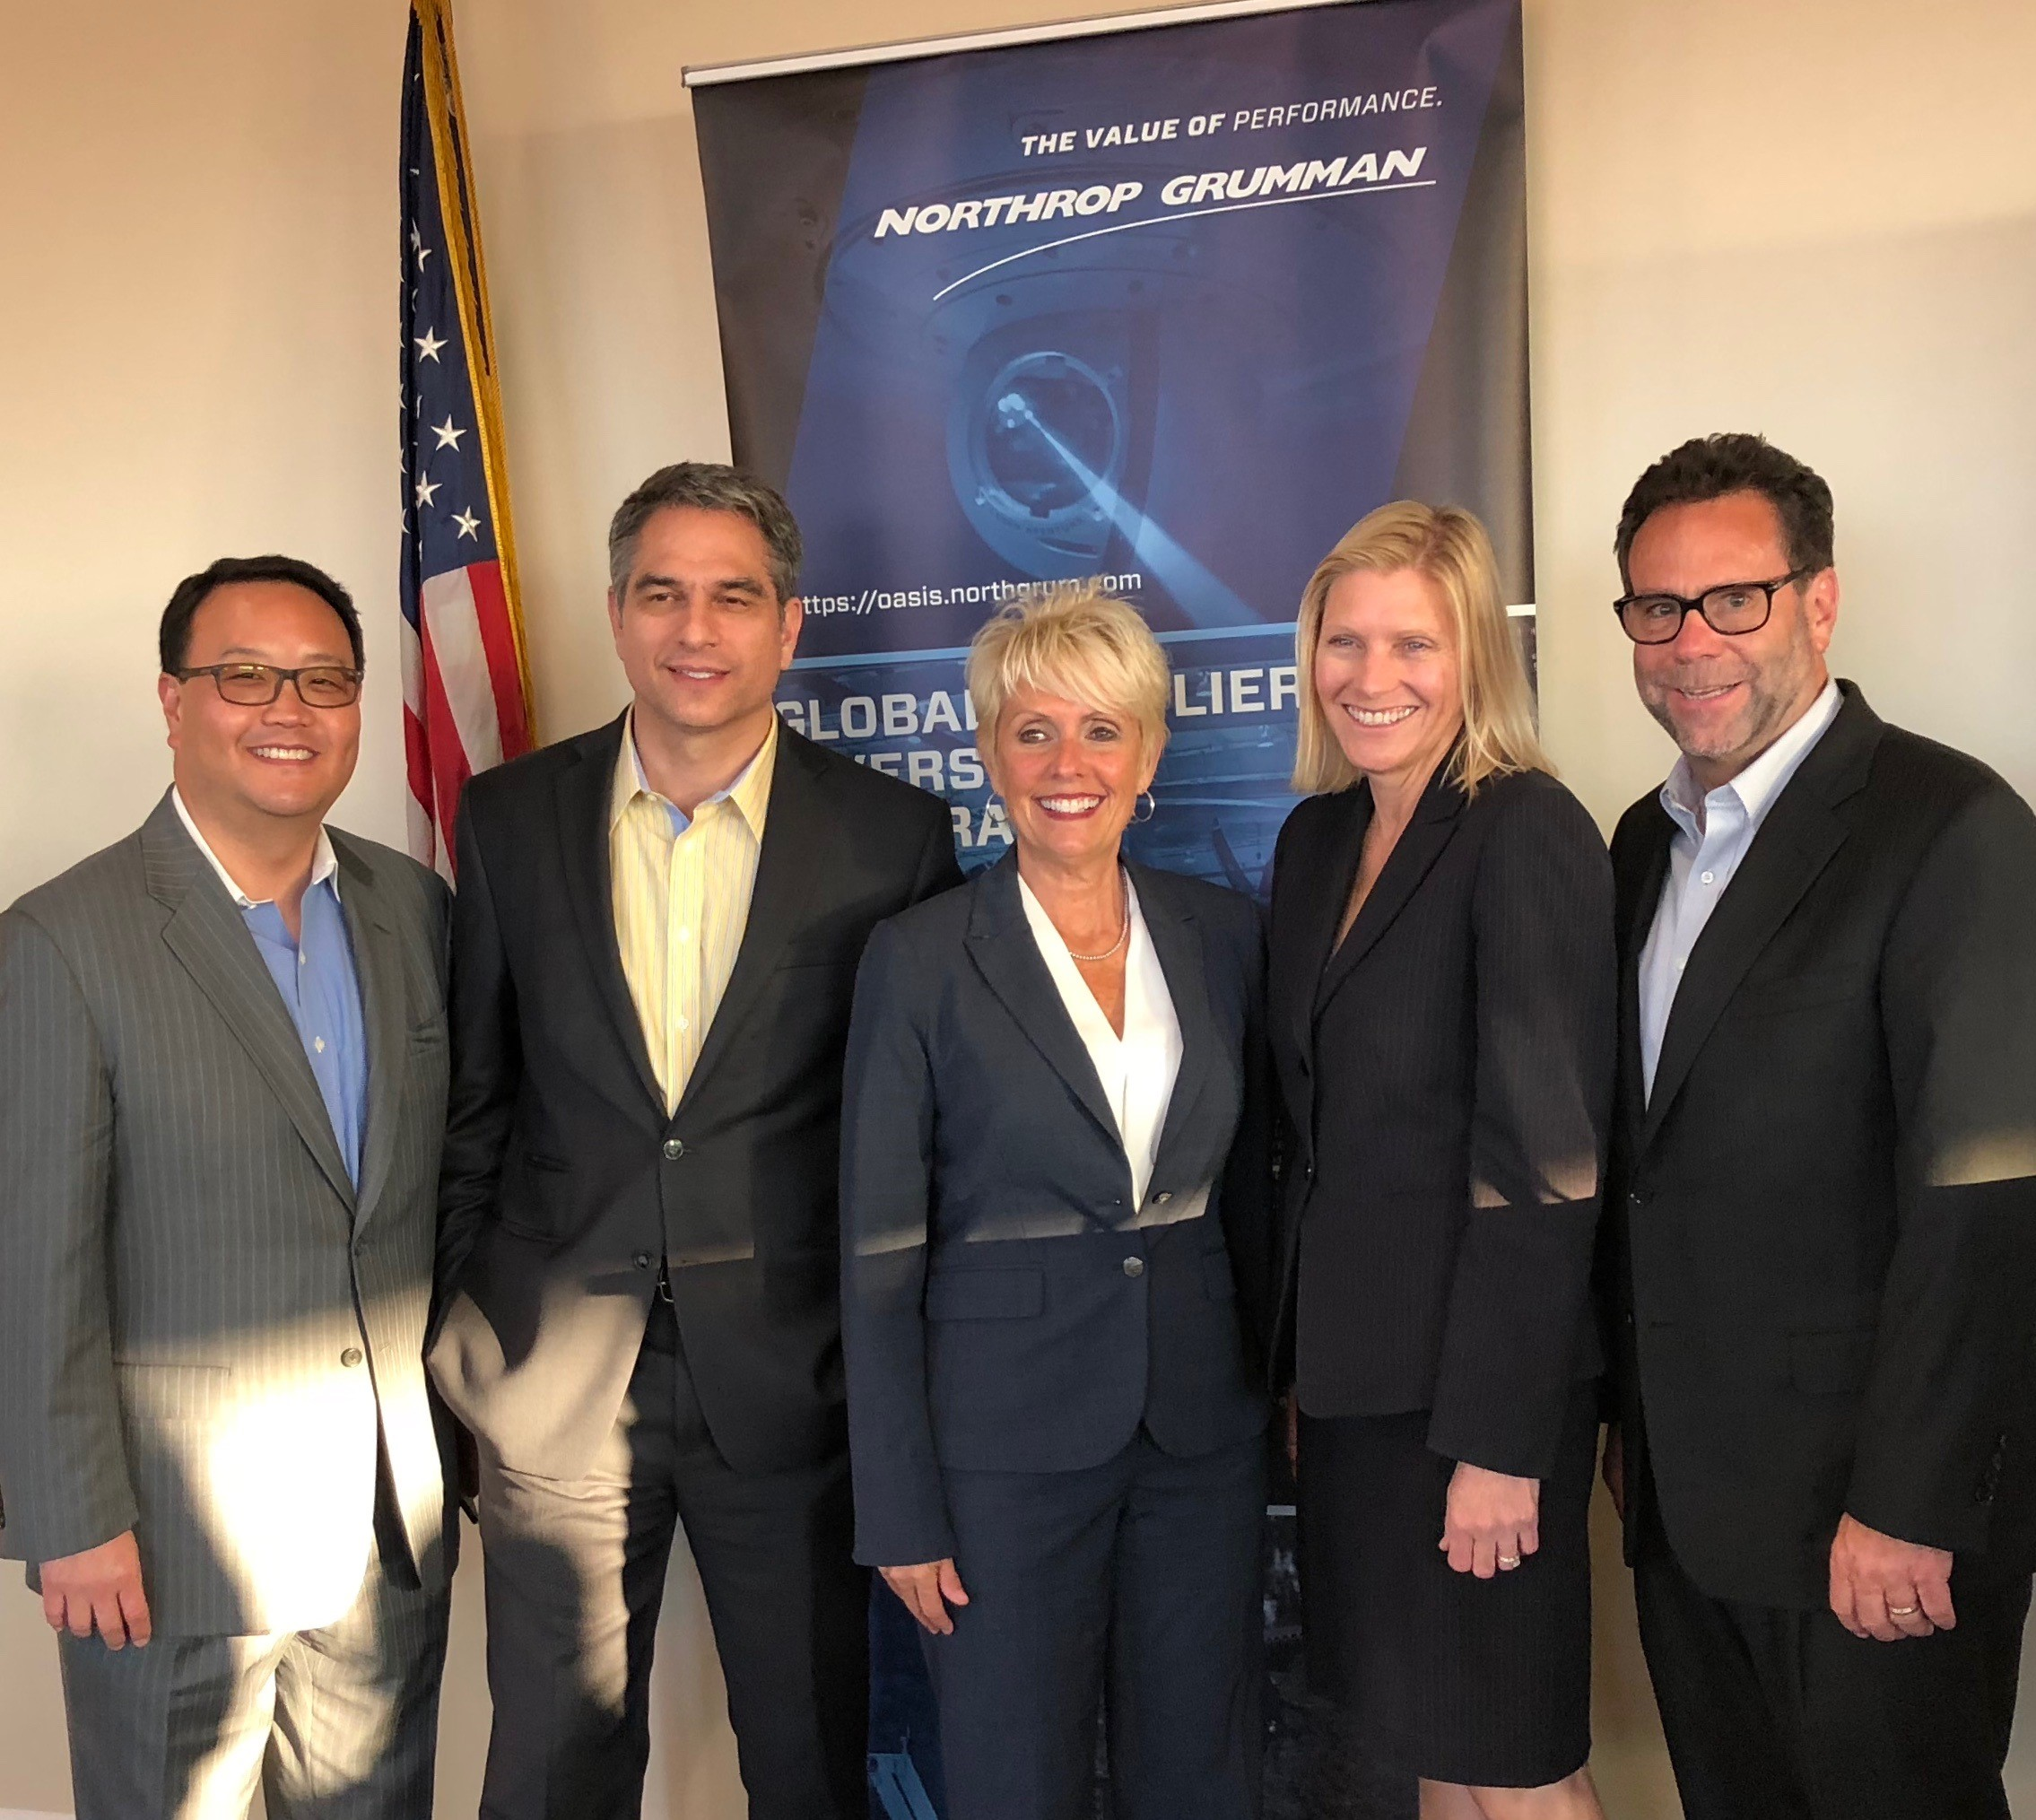 SoCal Aerospace Council Featured Northrop Grumman Matchmaking Session